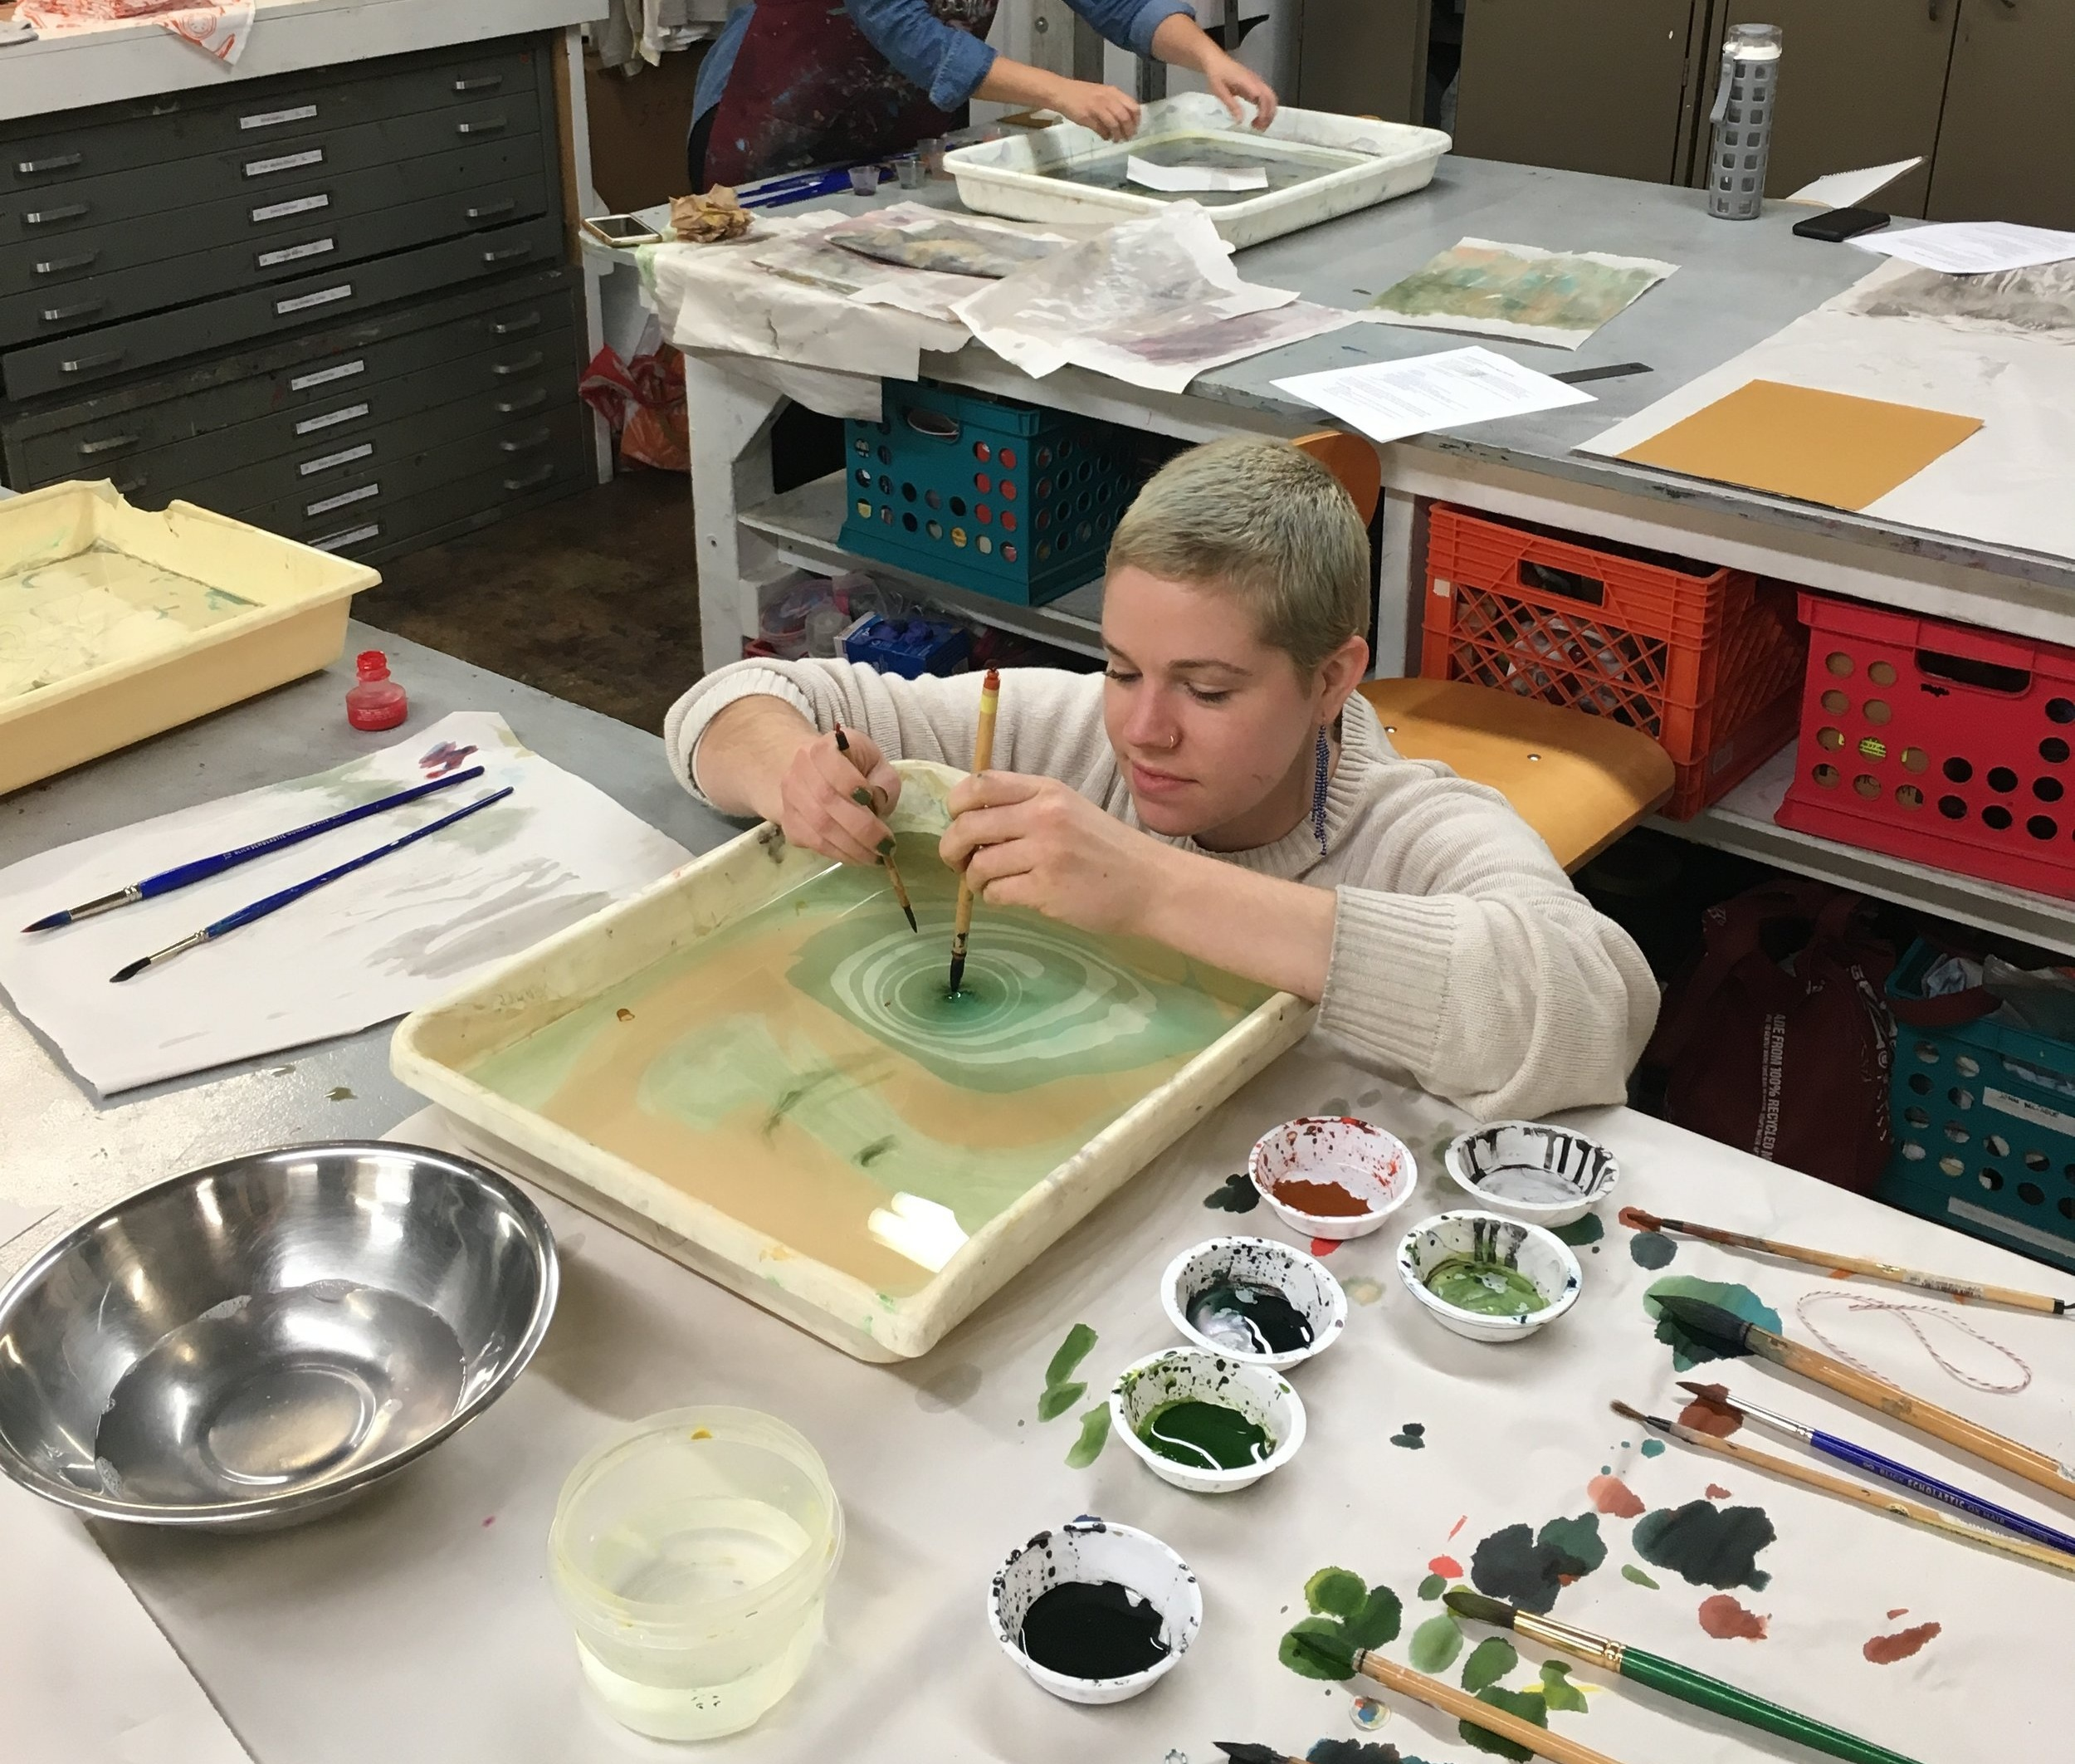 Education - Second State Press offers a variety of programs for printmaking education. From lithography to screen printing, we host learning opportunities catered for both adults and children!